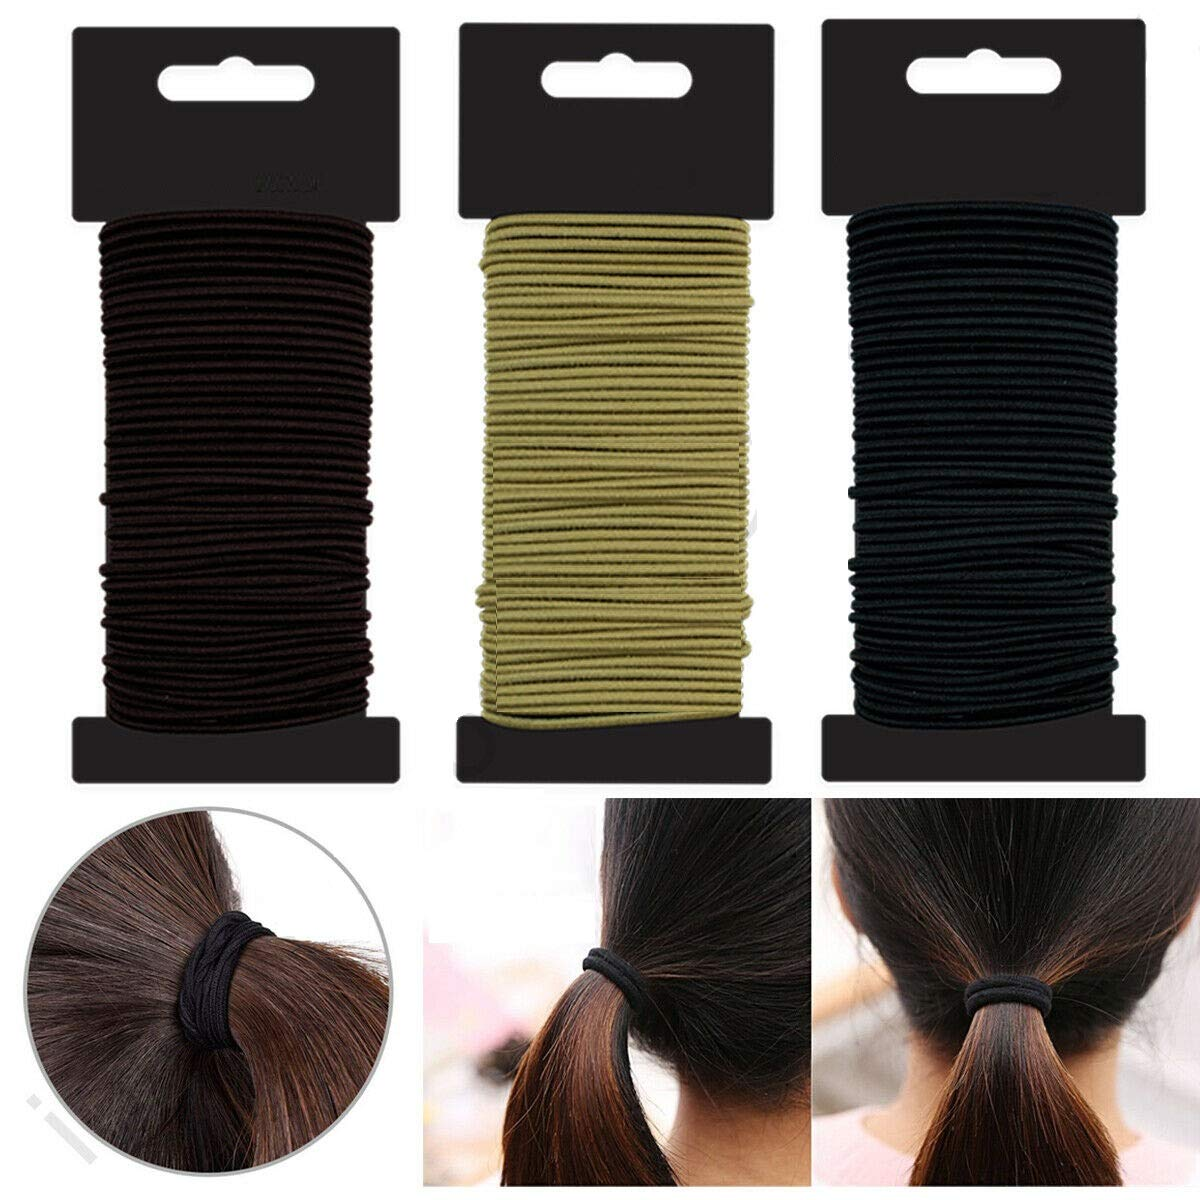 50 Snag Free Thin Elastic Hair Bands Bobbles Band School Ponytail Black Brown